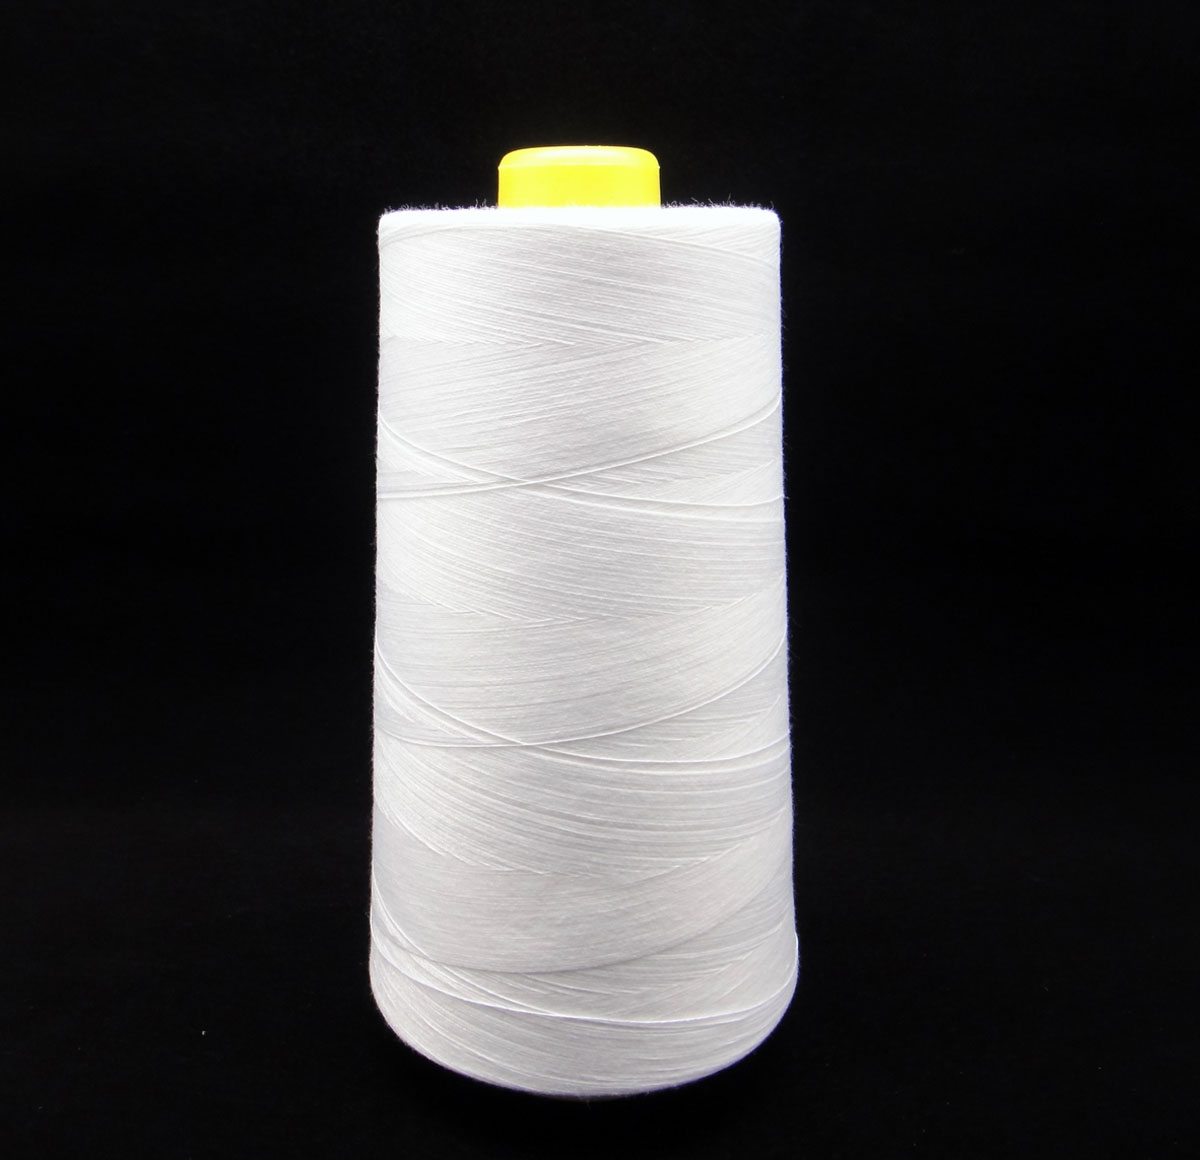 Lsn sewing thread white m dolphin brand shop